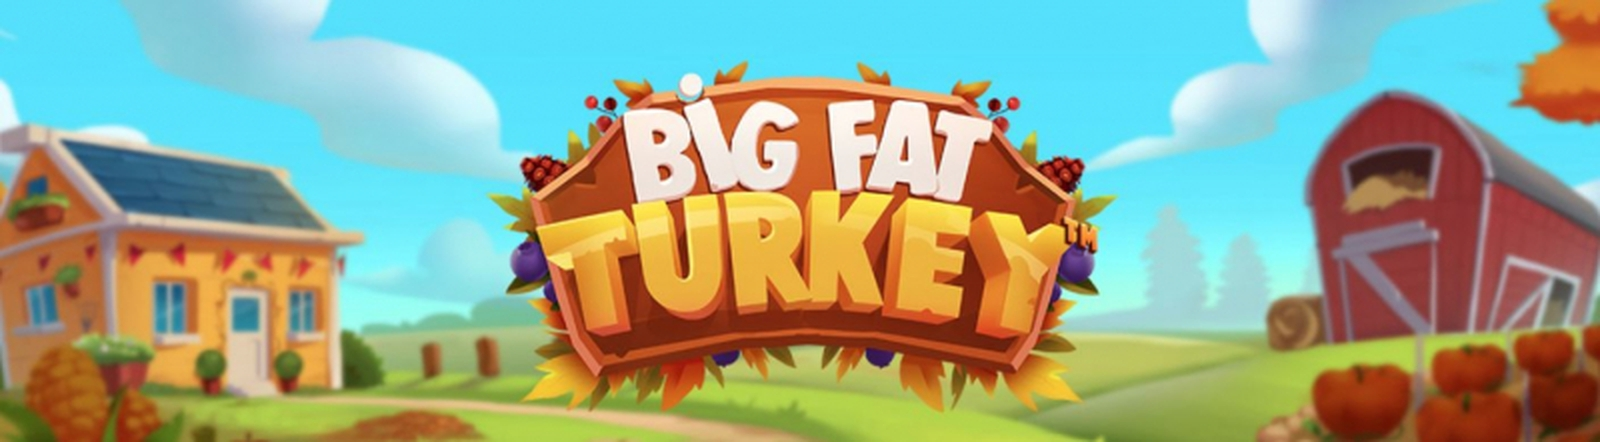 The Big Fat Turkey Online Slot Demo Game by Mobilots